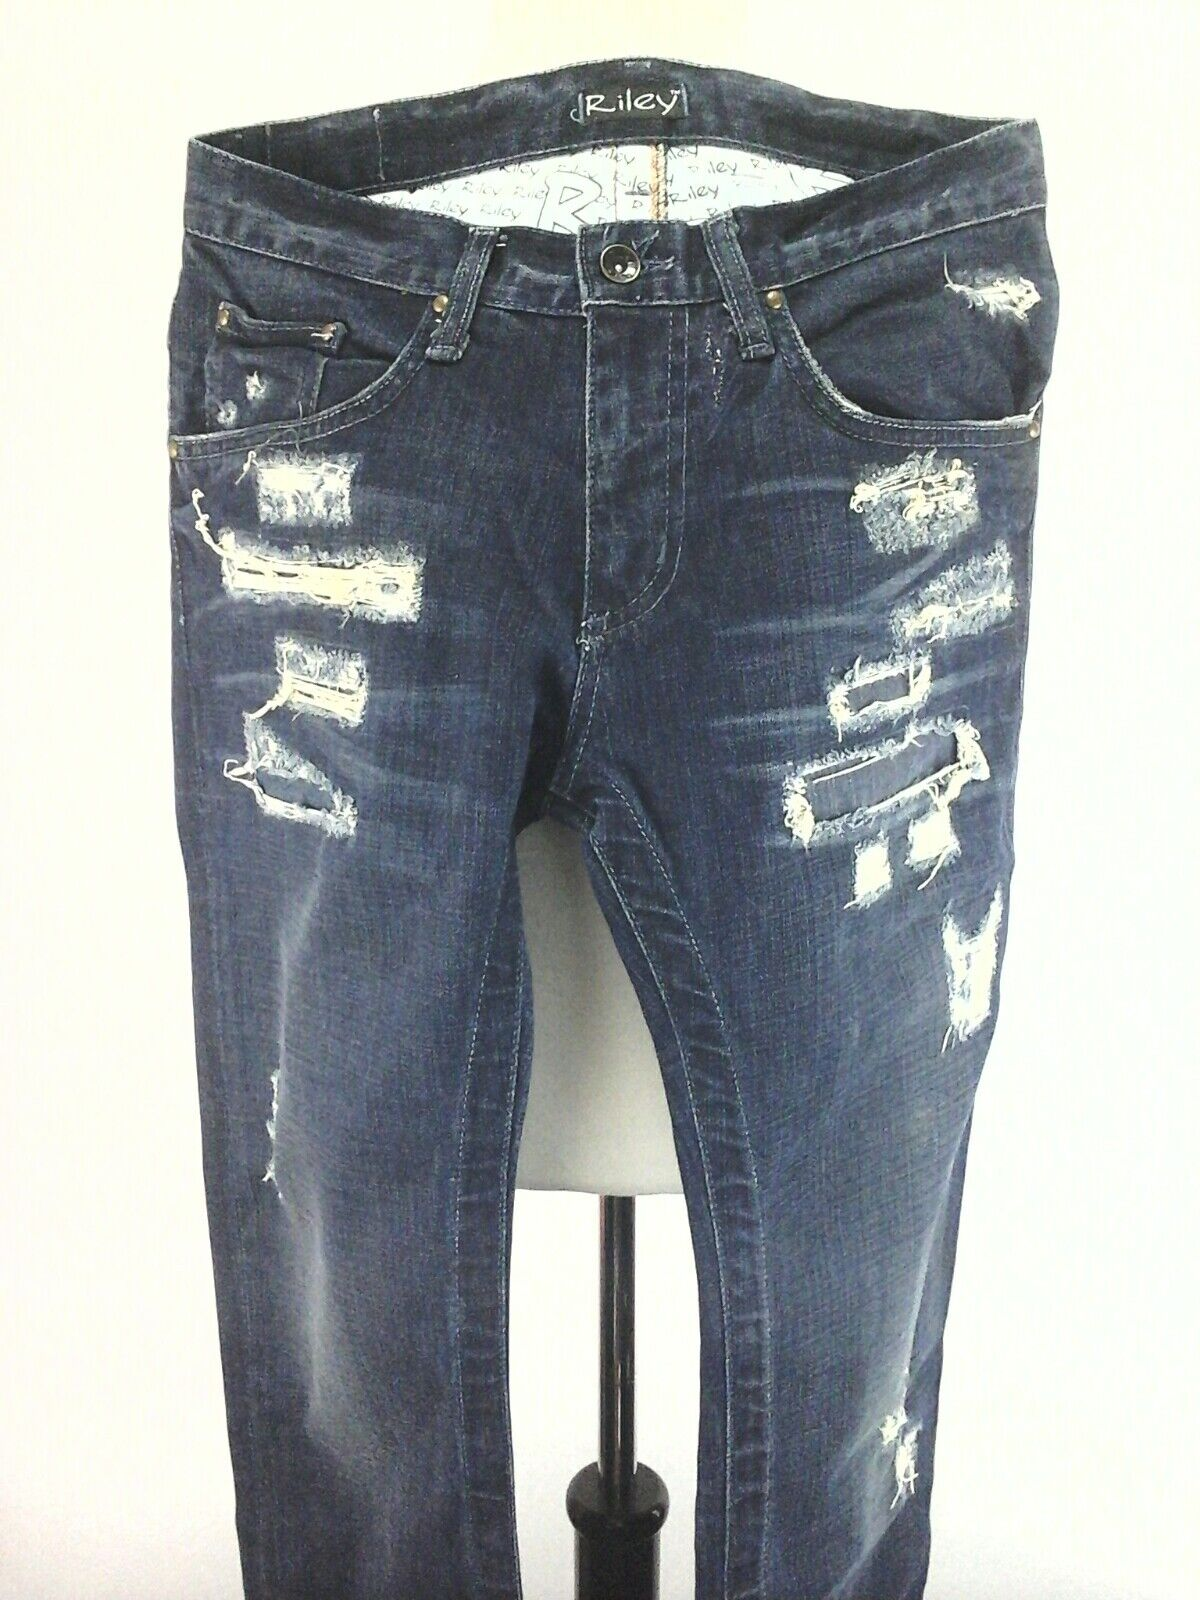 565b9a227b64 Riley destroyed distressed ripped womens boot cut jeans pants sz 28 ...